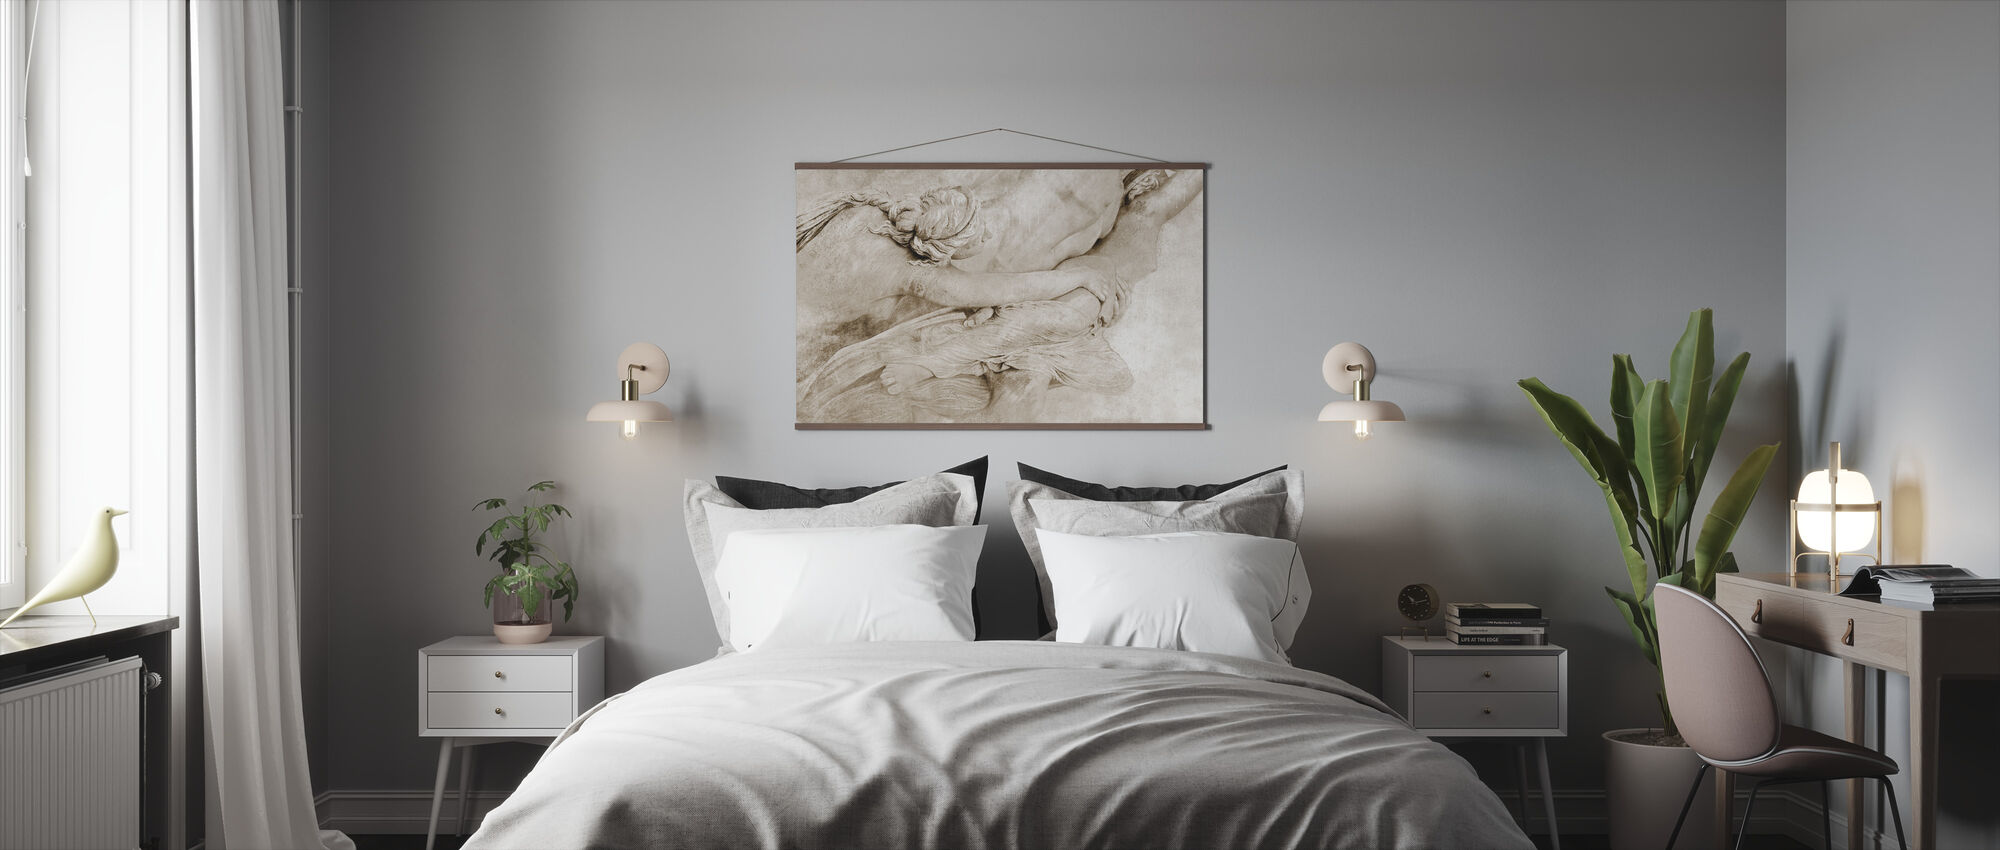 Of the Sculpture - Sepia - Poster - Bedroom